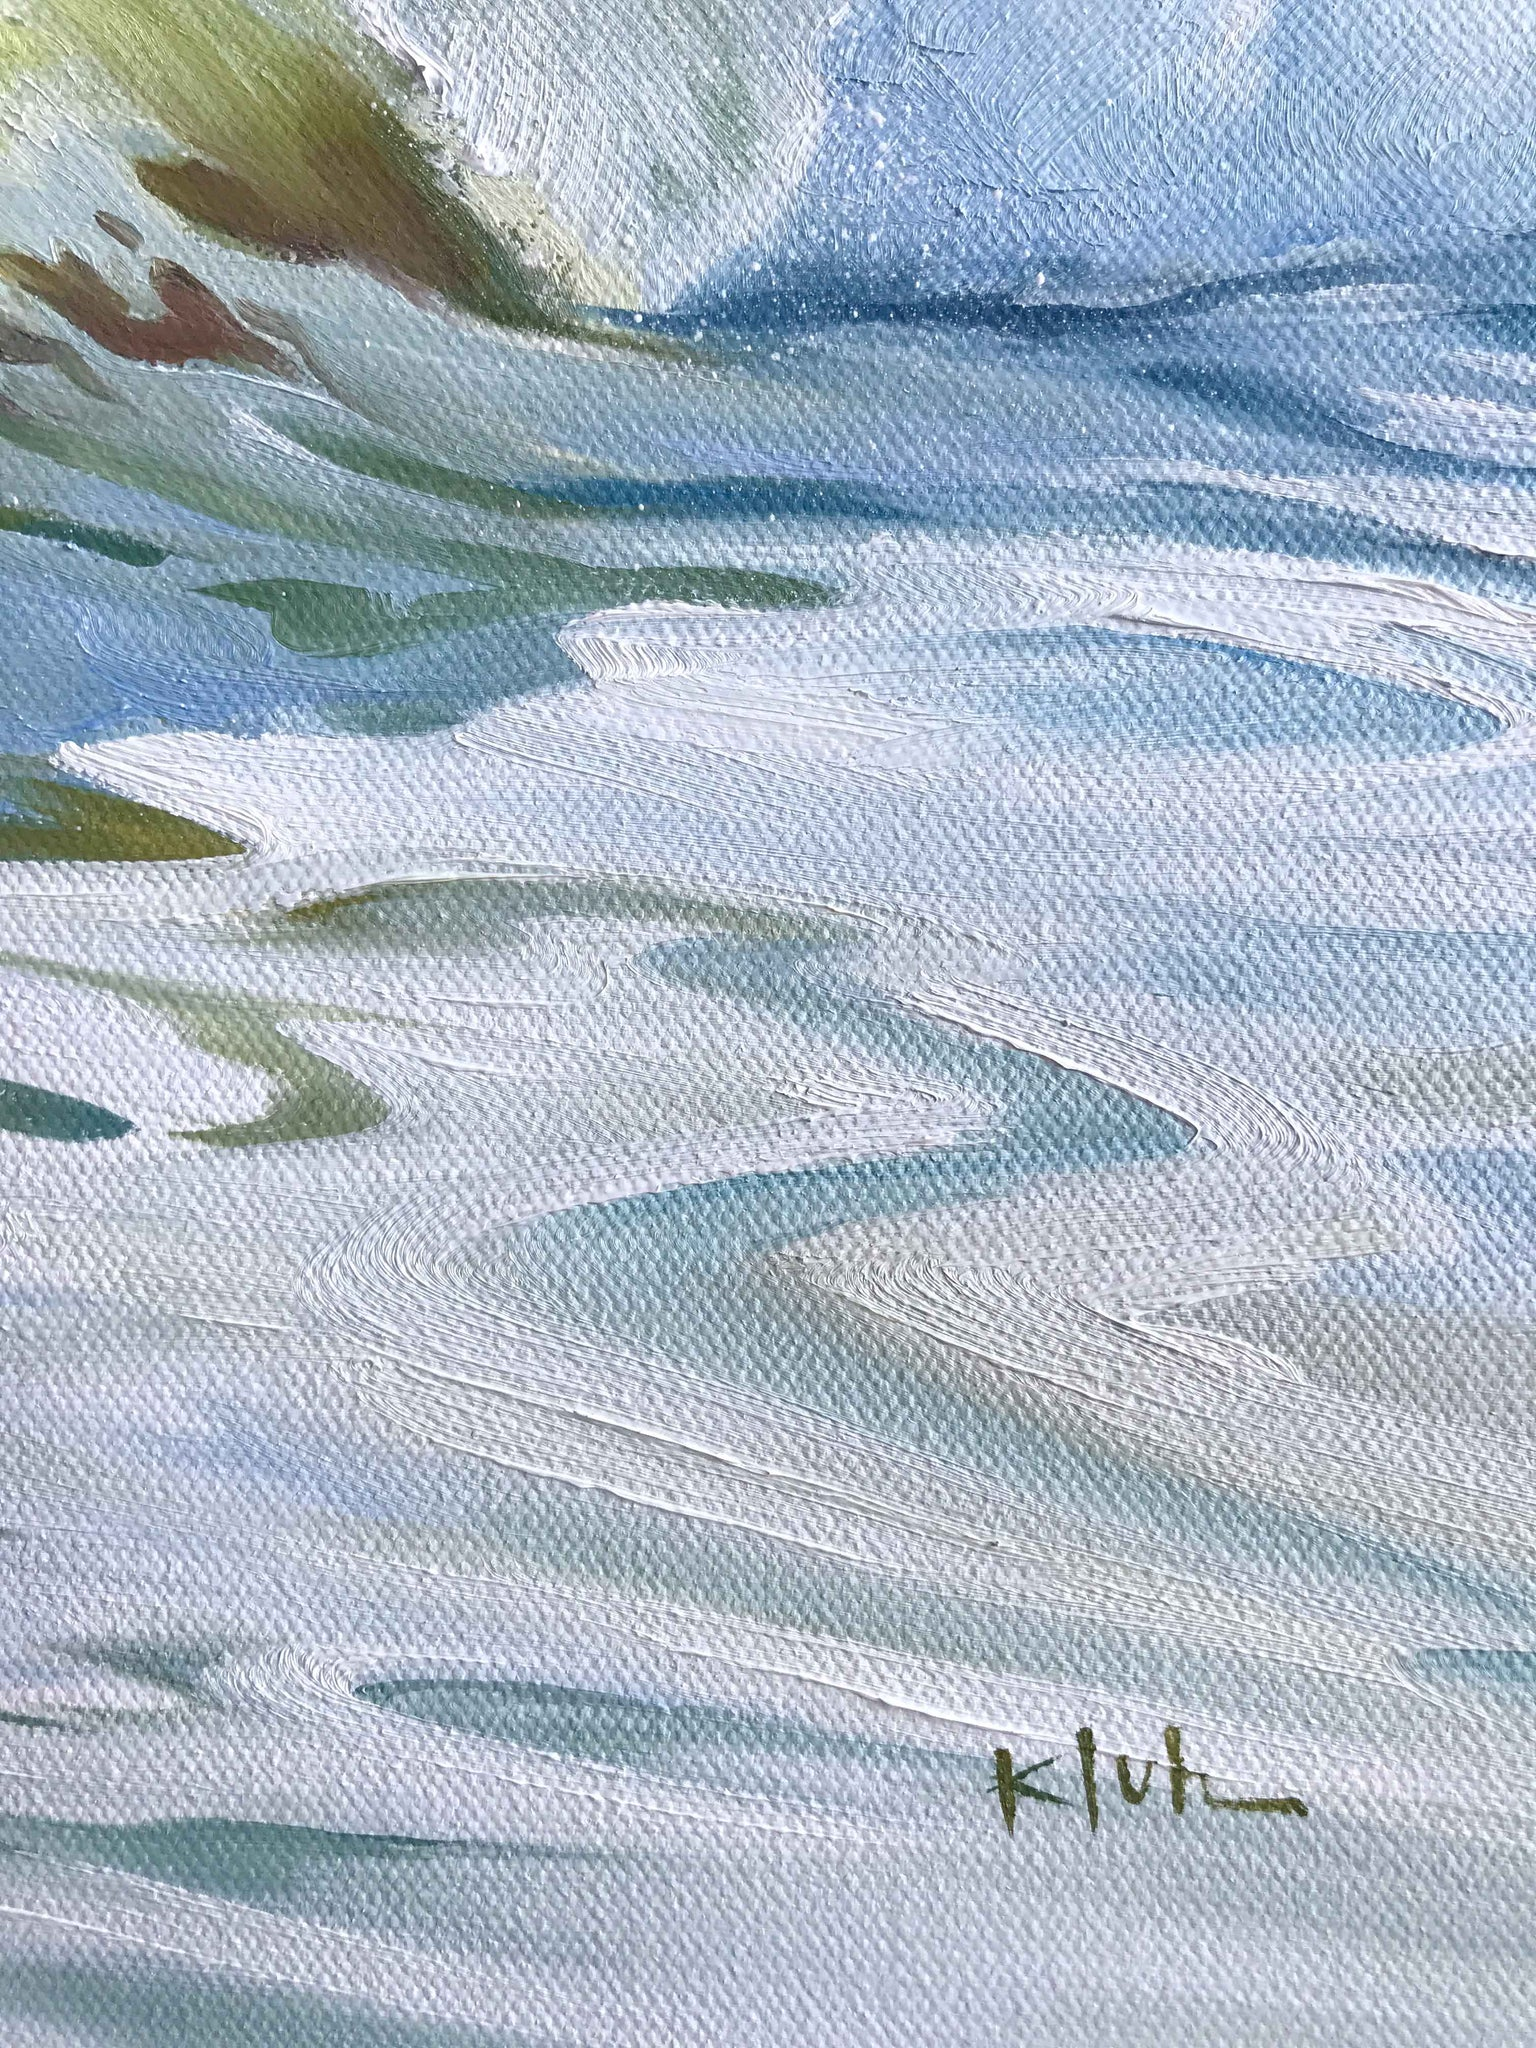 Details of seafoam and water oil painting - Julie Kluh Art